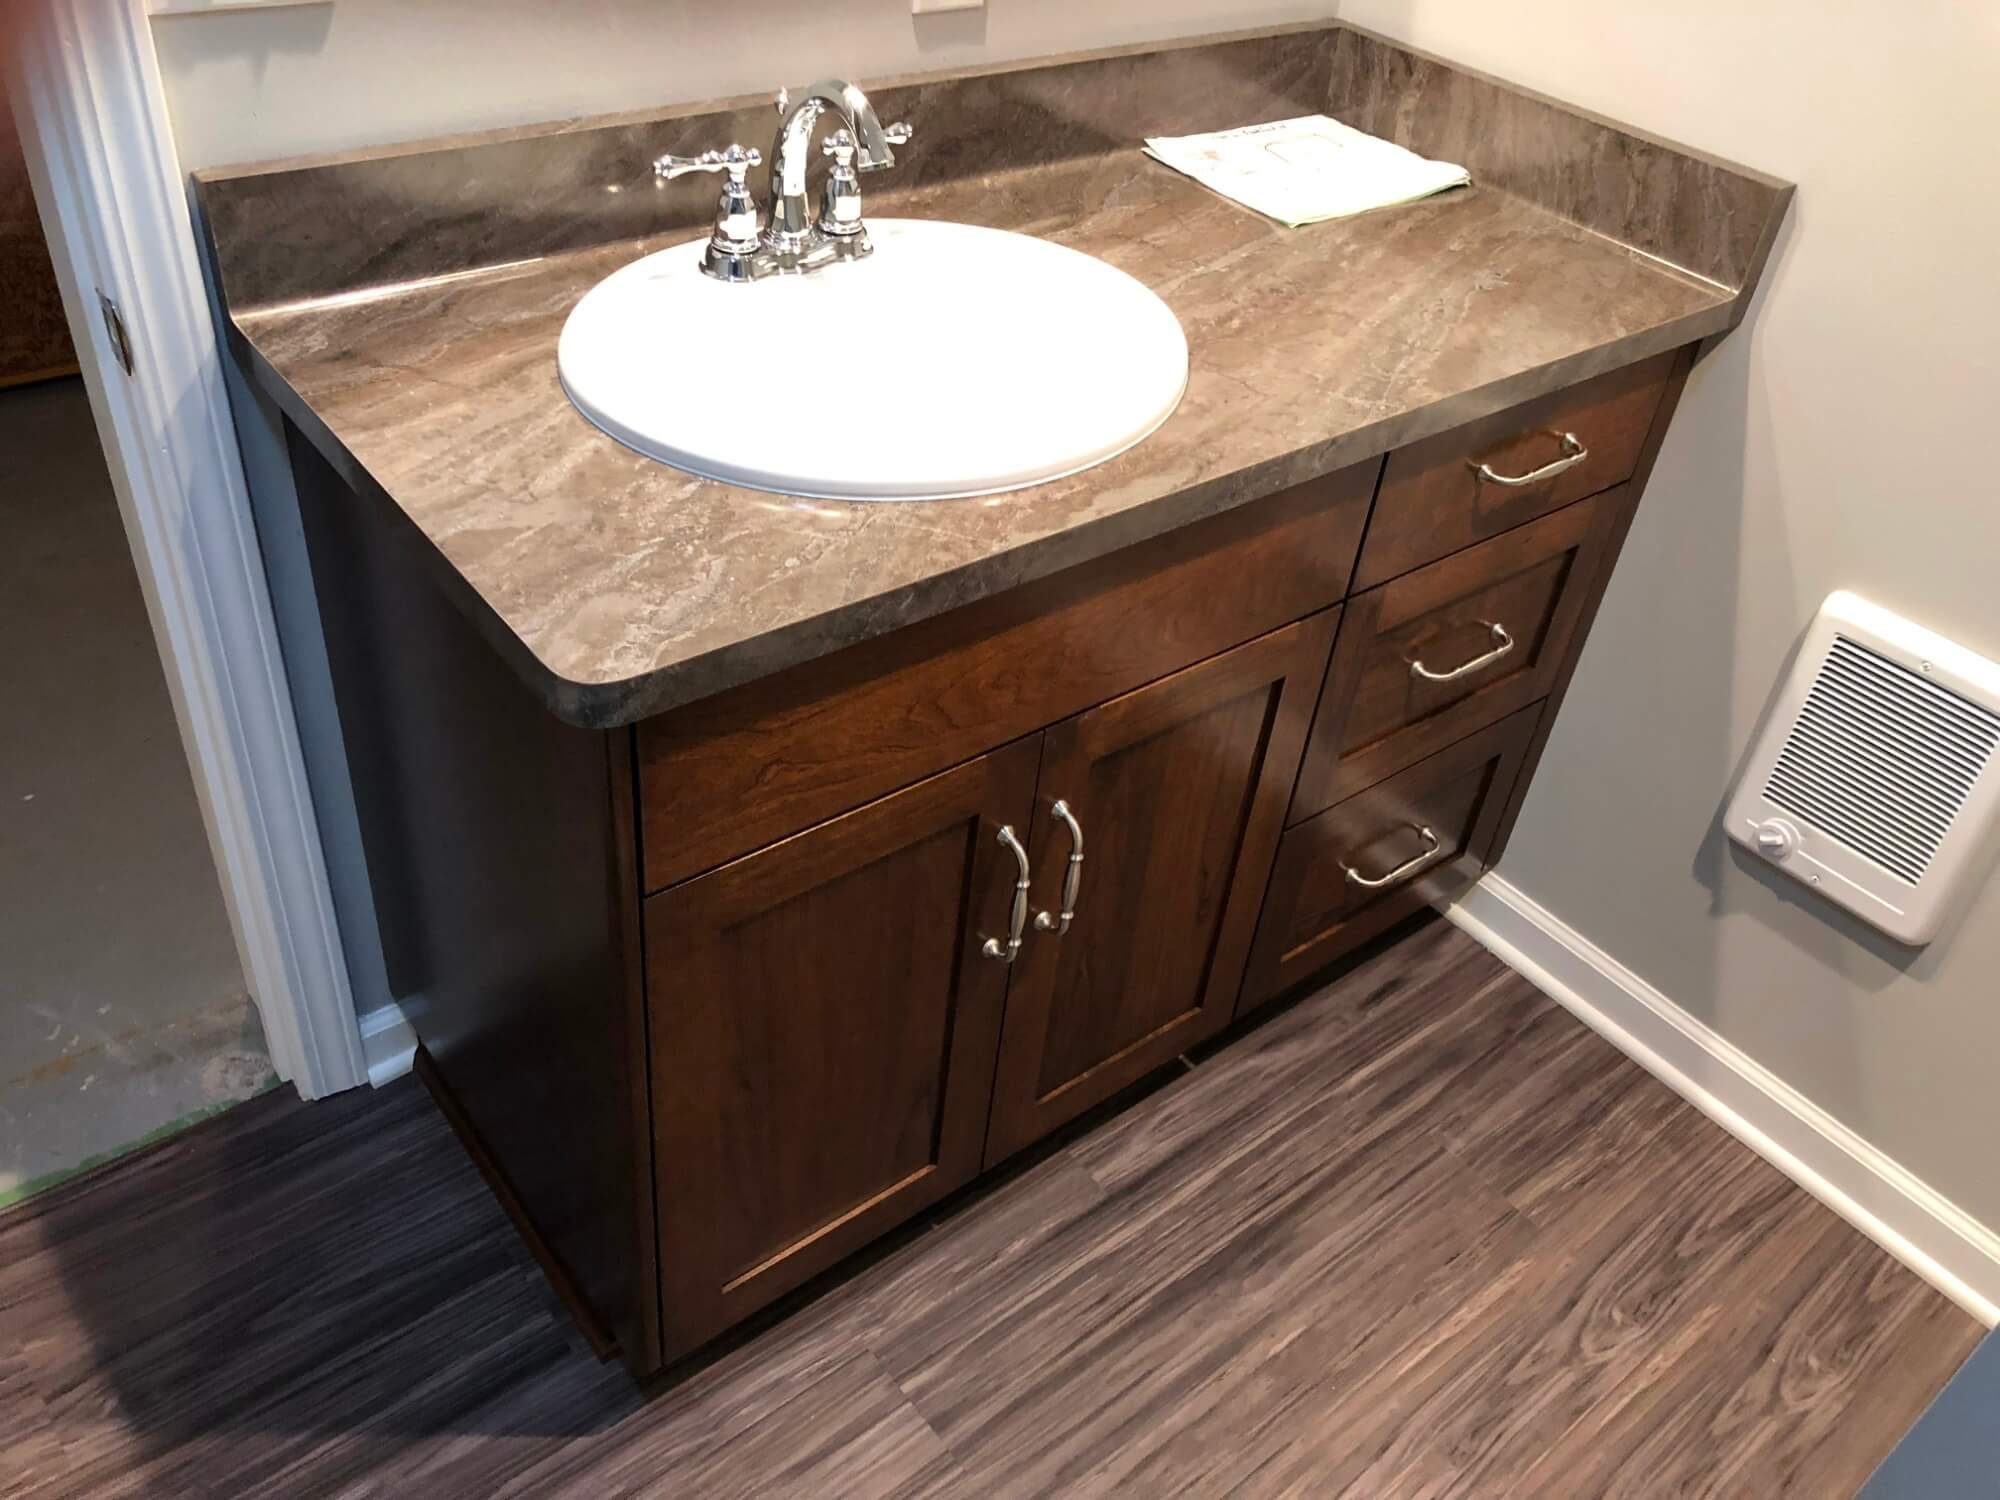 Sink Cabinet for Bathroom